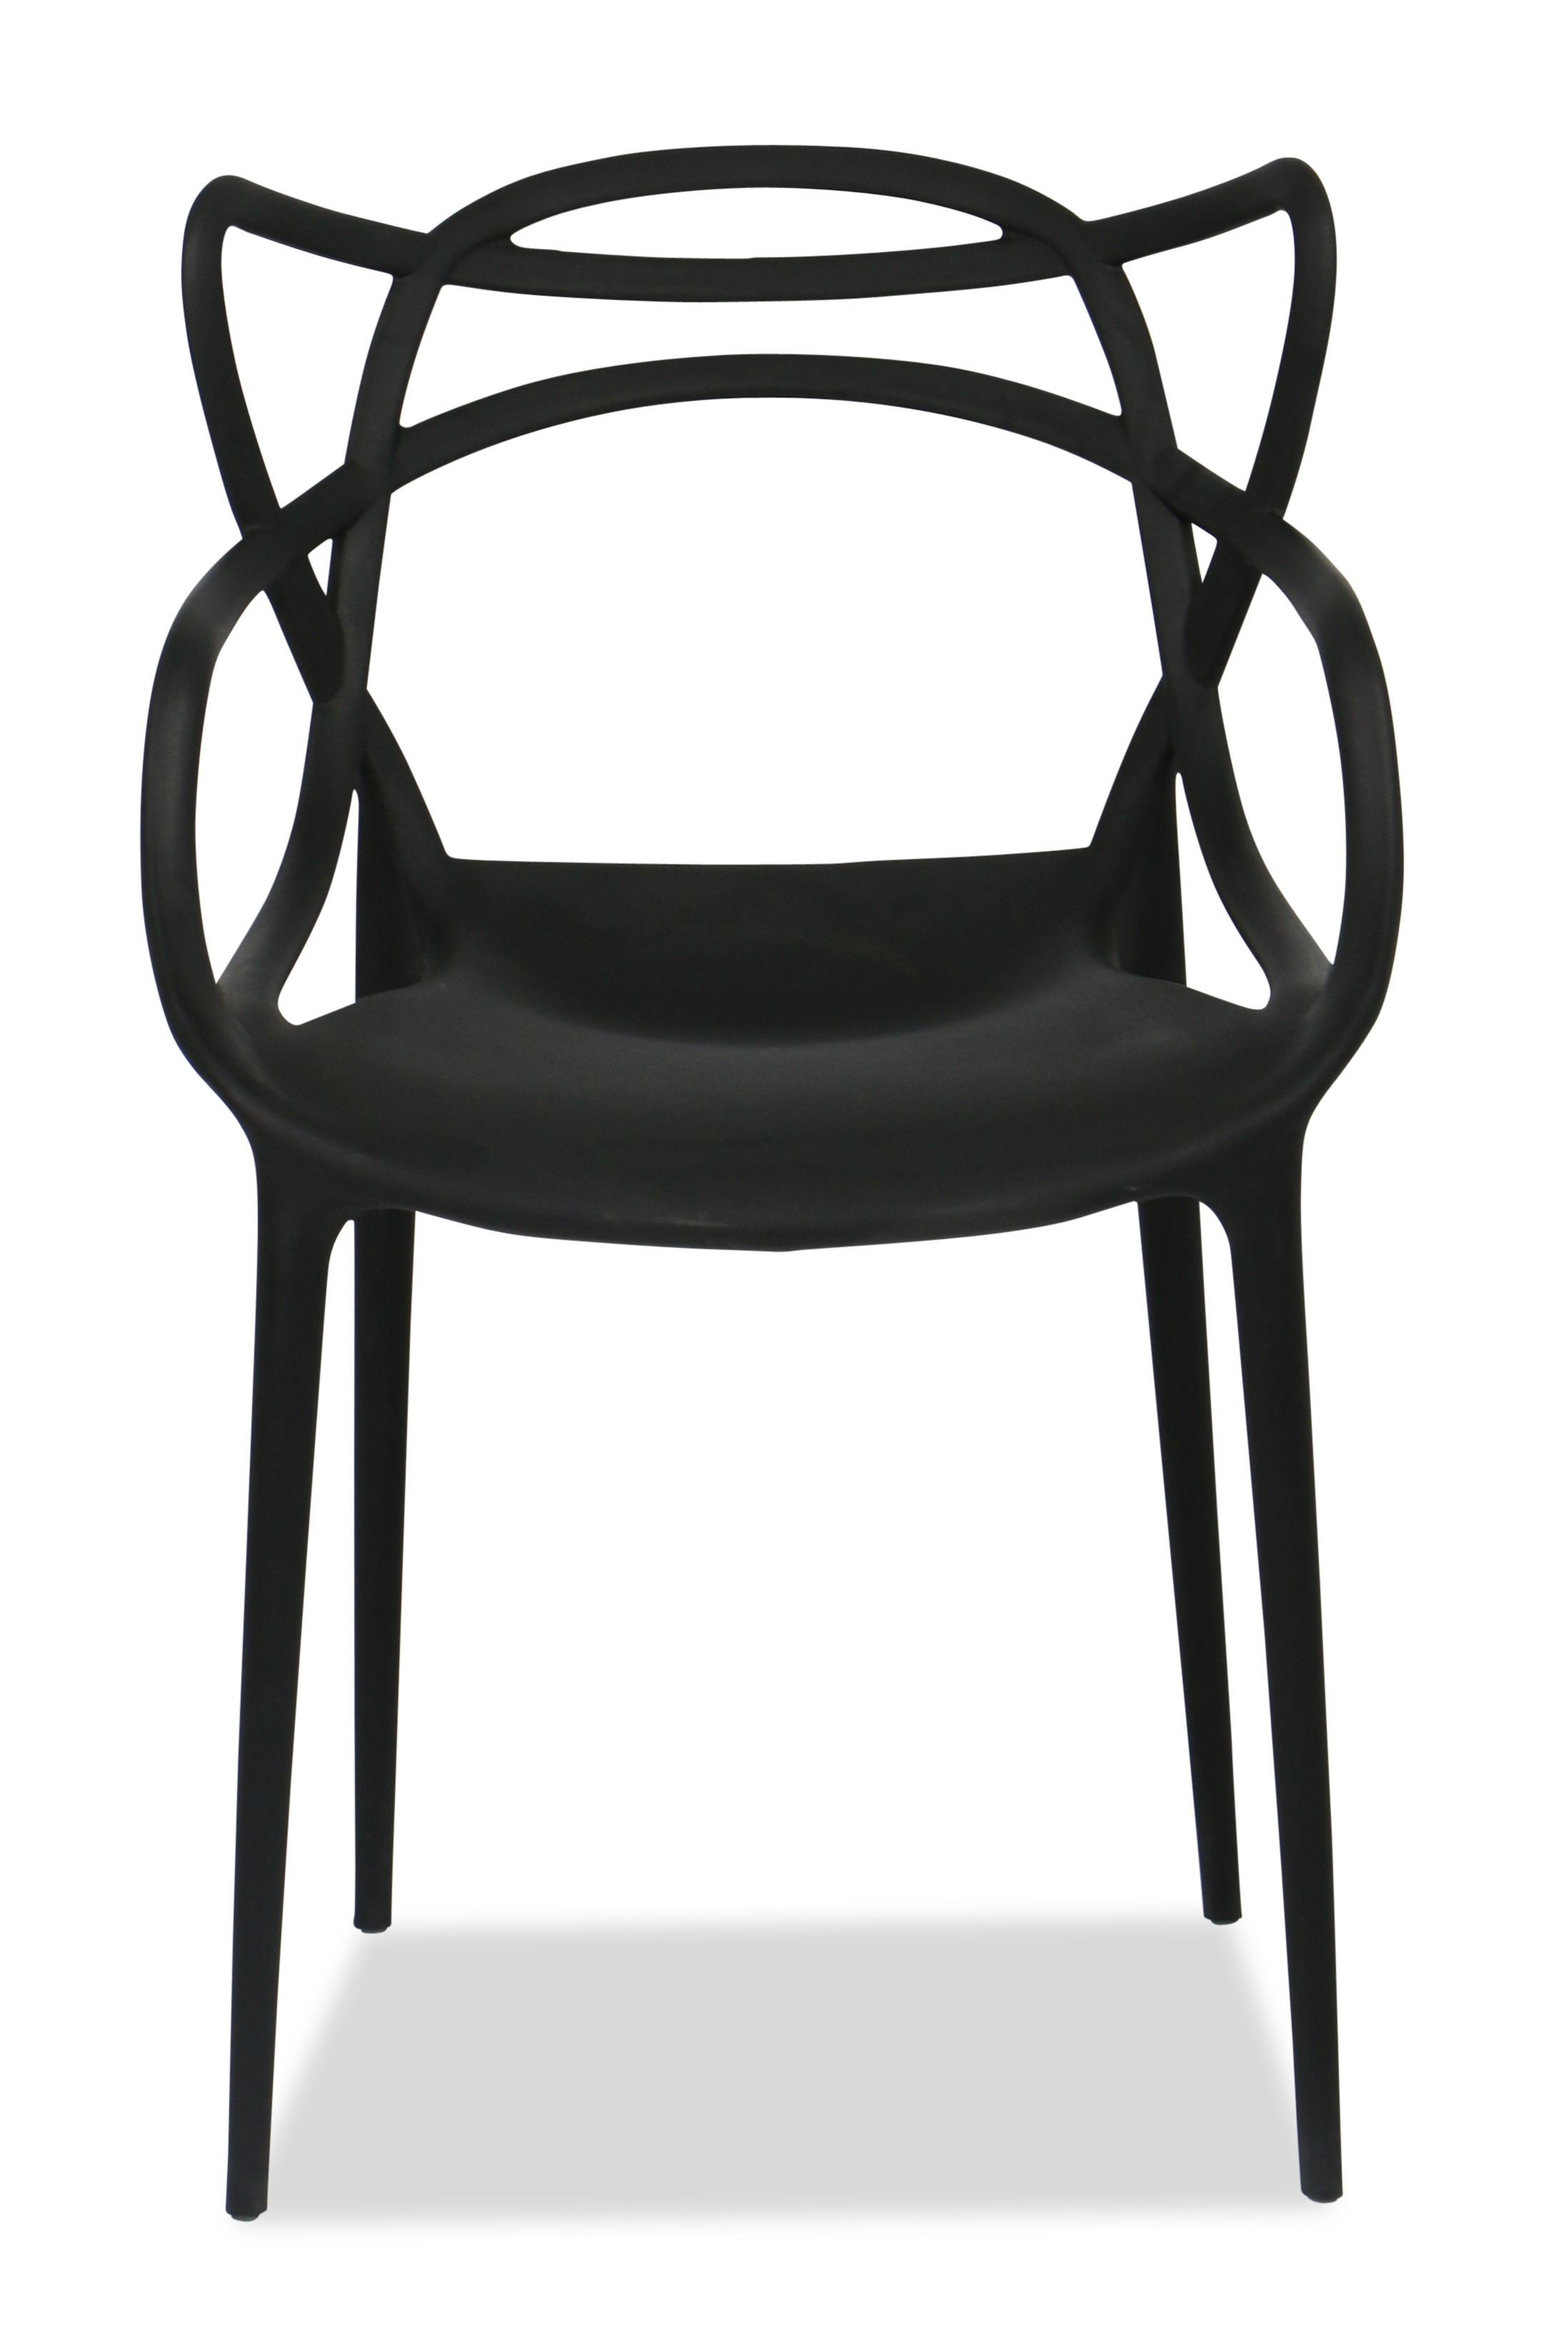 Outstanding Camelia Designer Chair Black Inzonedesignstudio Interior Chair Design Inzonedesignstudiocom